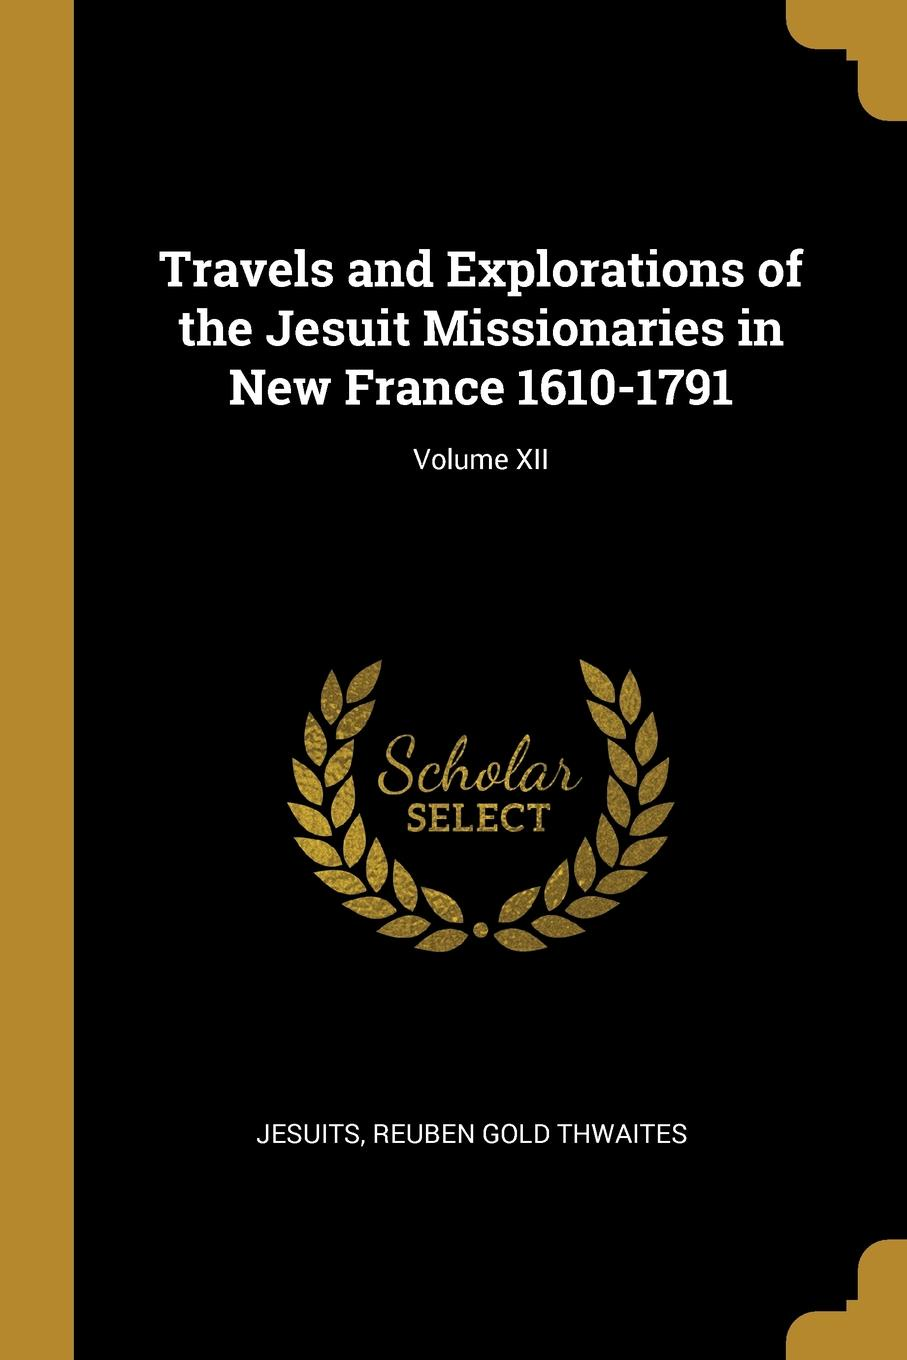 Jesuits Reuben Gold Thwaites Travels and Explorations of the Jesuit Missionaries in New France 1610-1791; Volume XII